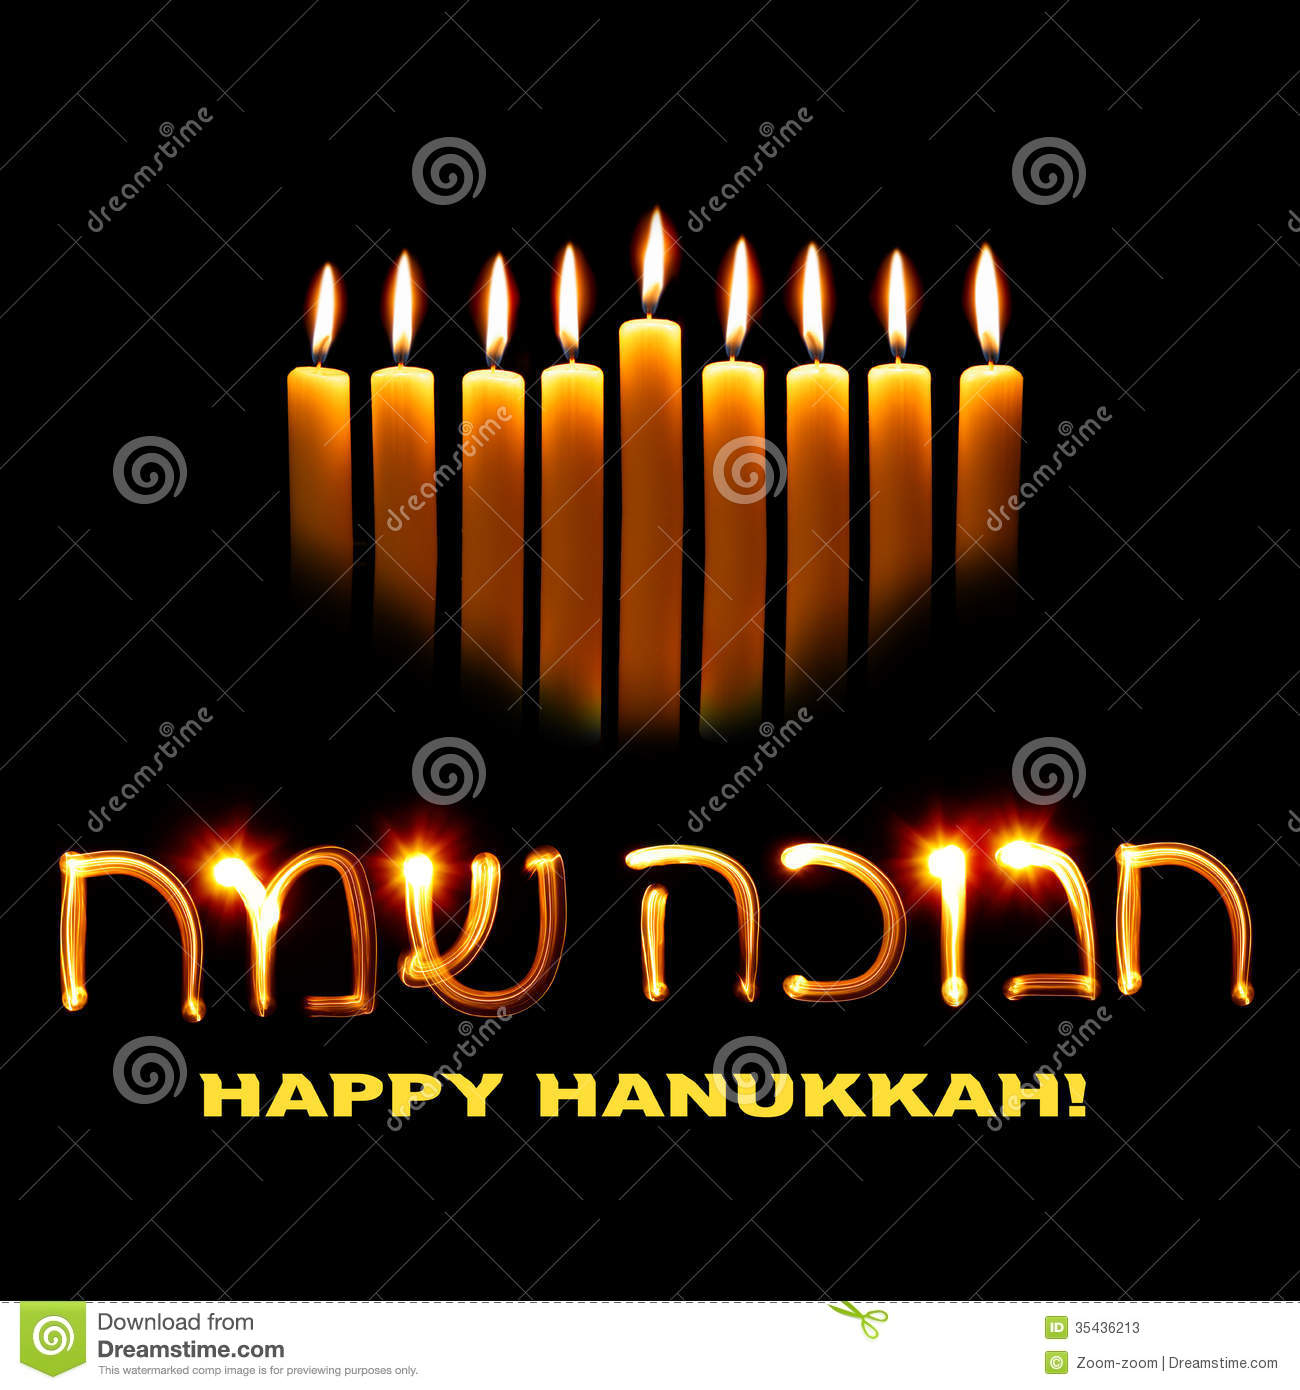 Happy hanukkah stock illustration illustration of candleholder candles and wishes happy hanukkah in hebrew m4hsunfo